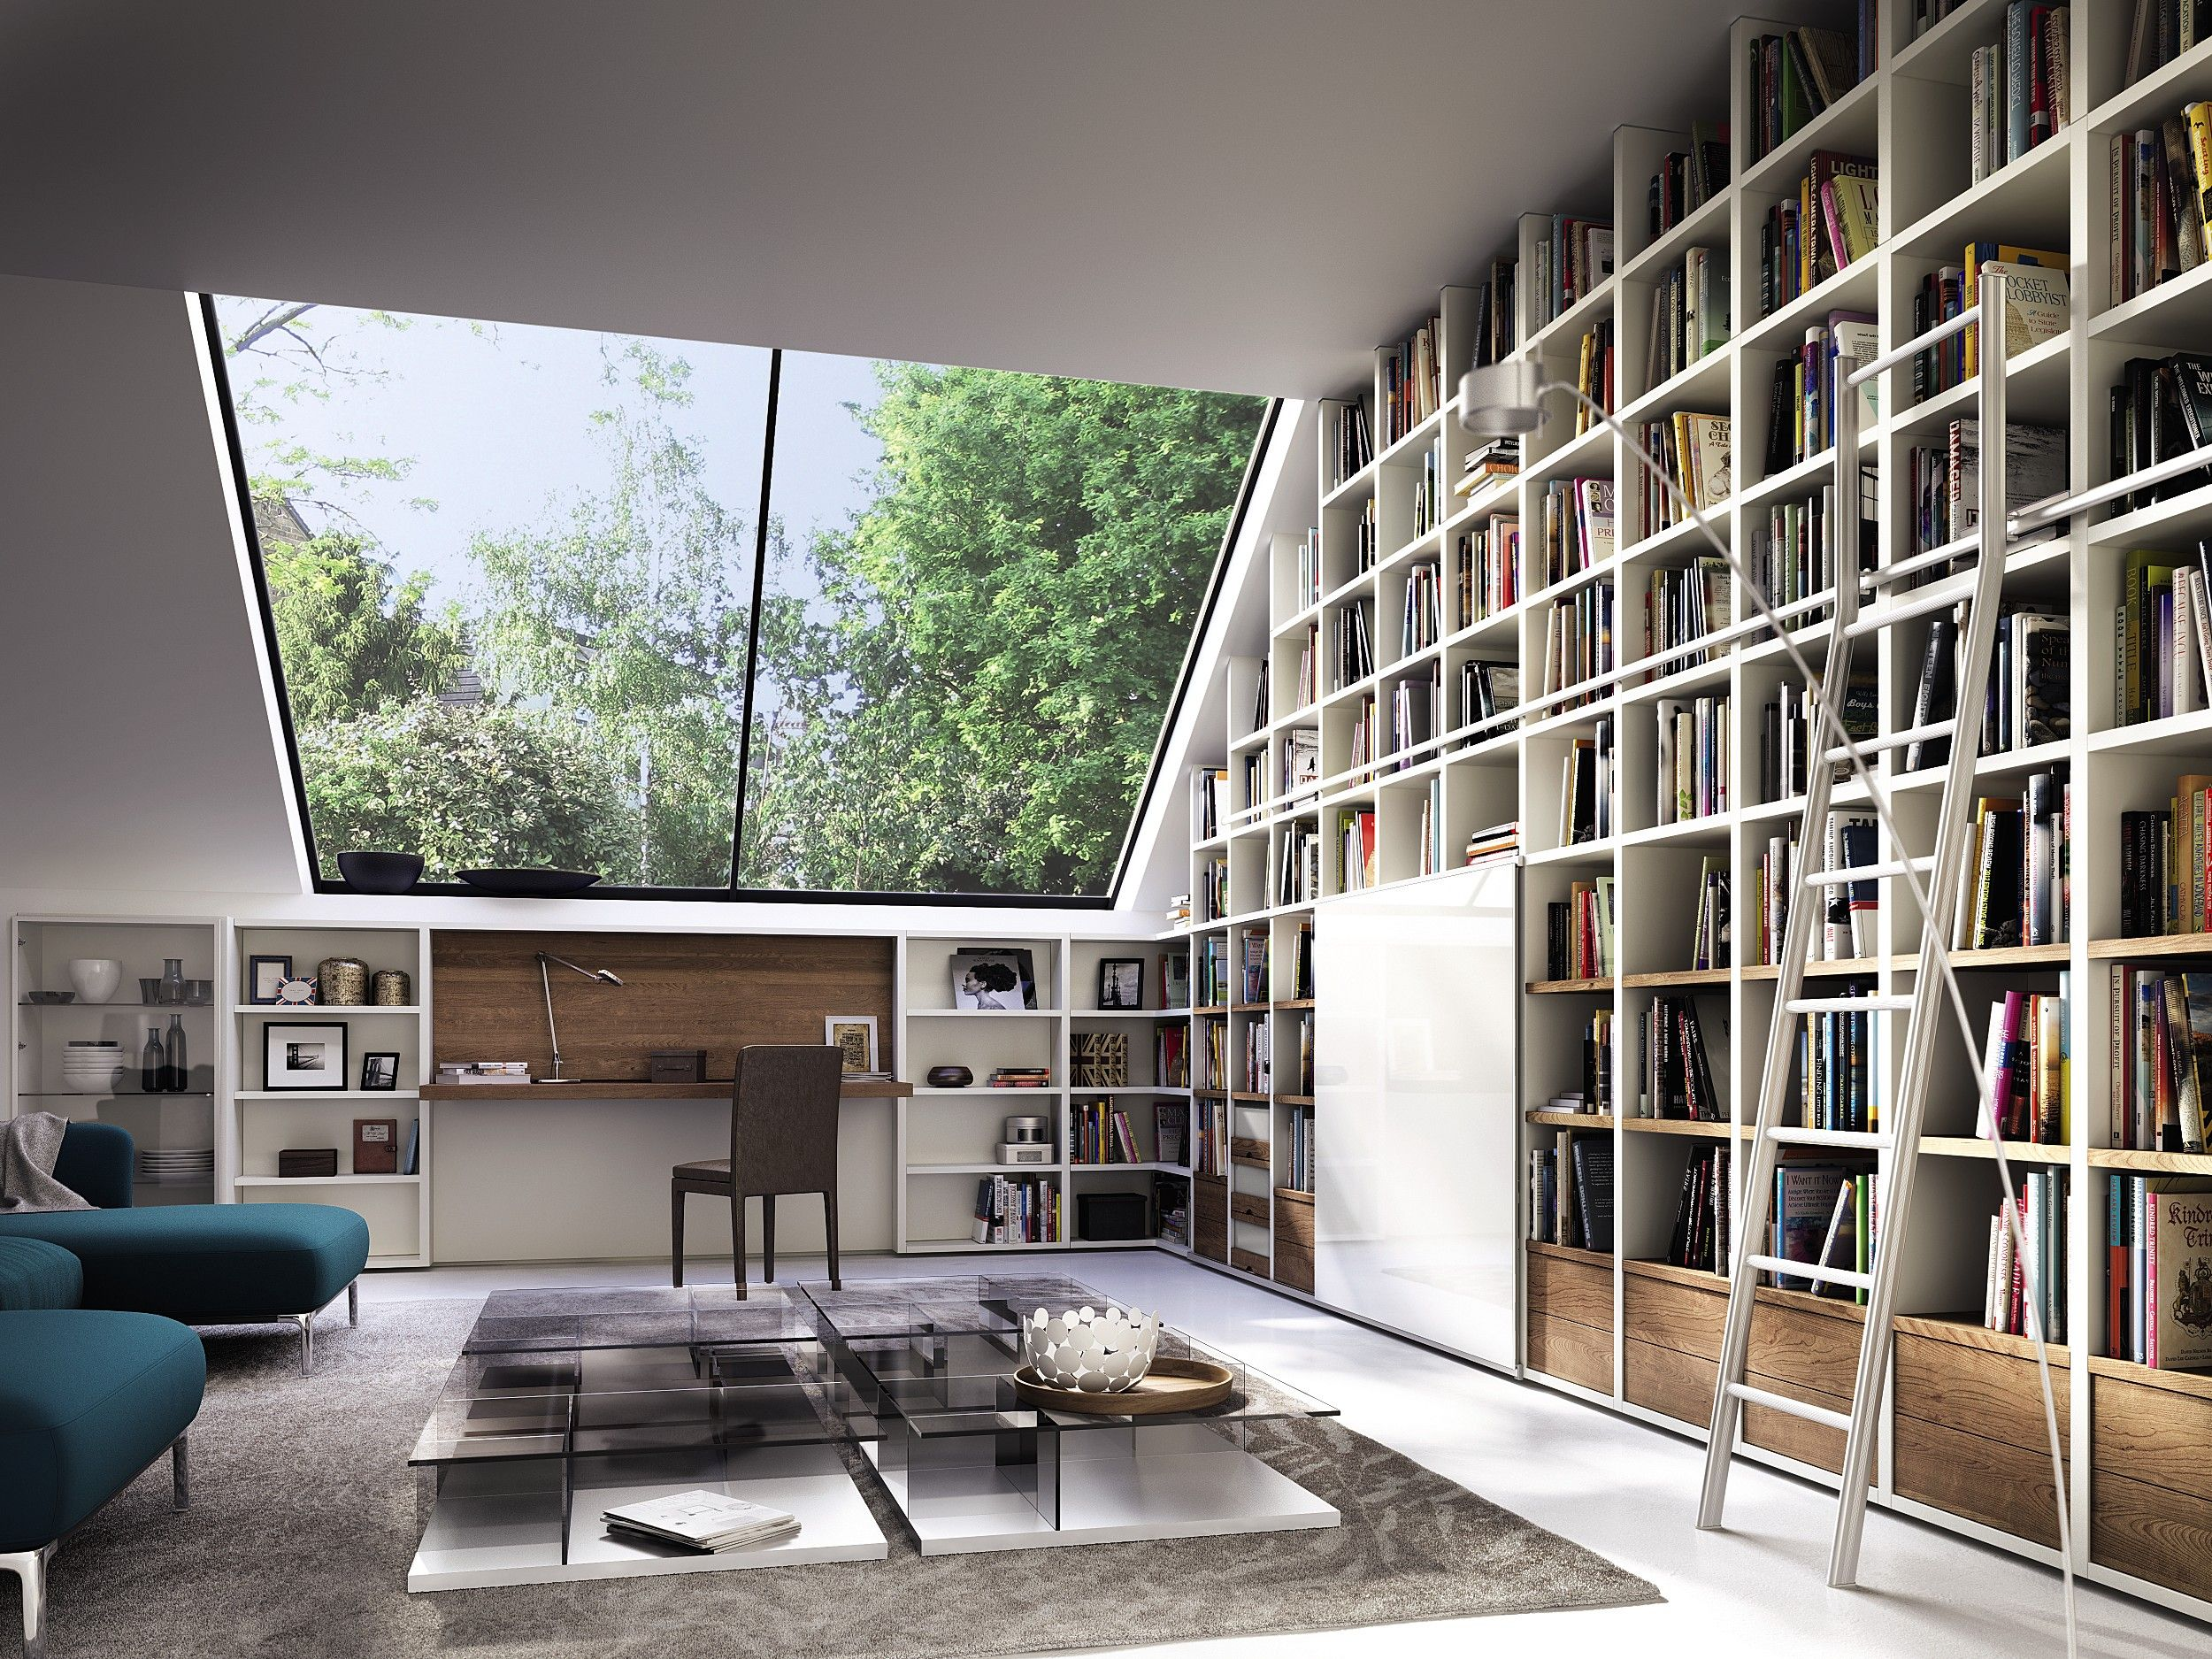 """One of the strengths of Huelsta's """"Mega-Design"""" is its flexibility! Innovative functions, new options, and attractive finishes leave plenty of scope for individual combinations. This allows you to add your own unmistakable style to this living room, shelving, and library system (capable of housing audiovisual equipment)."""